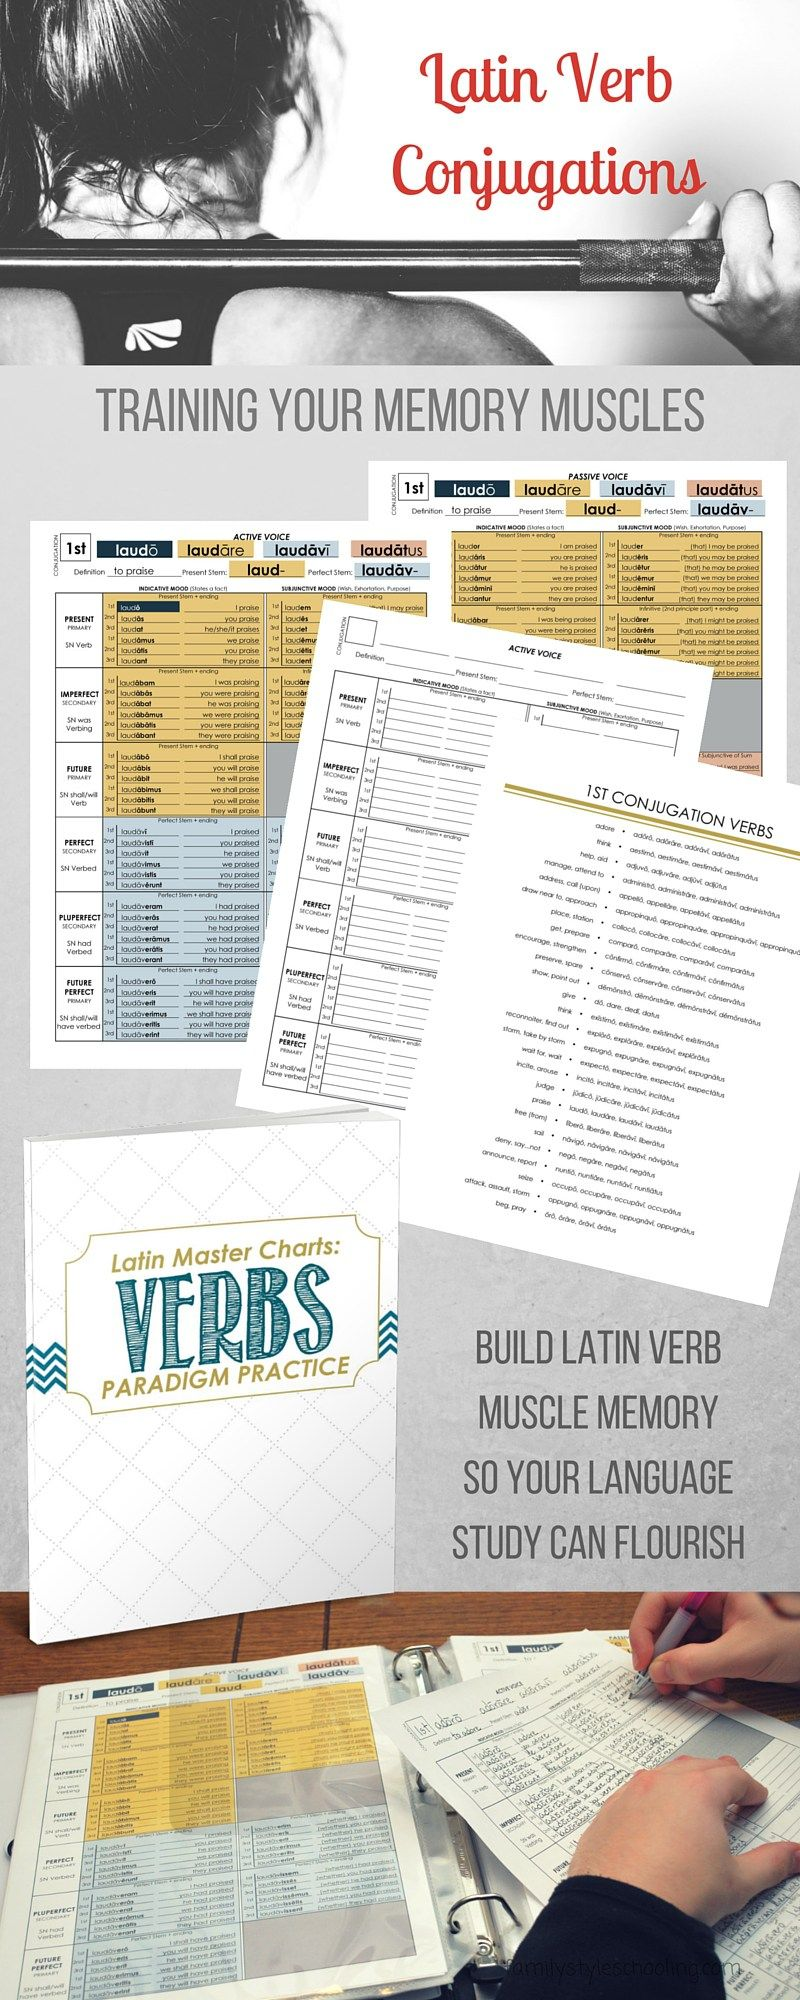 Latin Verb Conjugation Muscle Memory Conditioning Family Style Schooling Latin Language Learning Teaching Latin How To Memorize Things [ 2000 x 800 Pixel ]